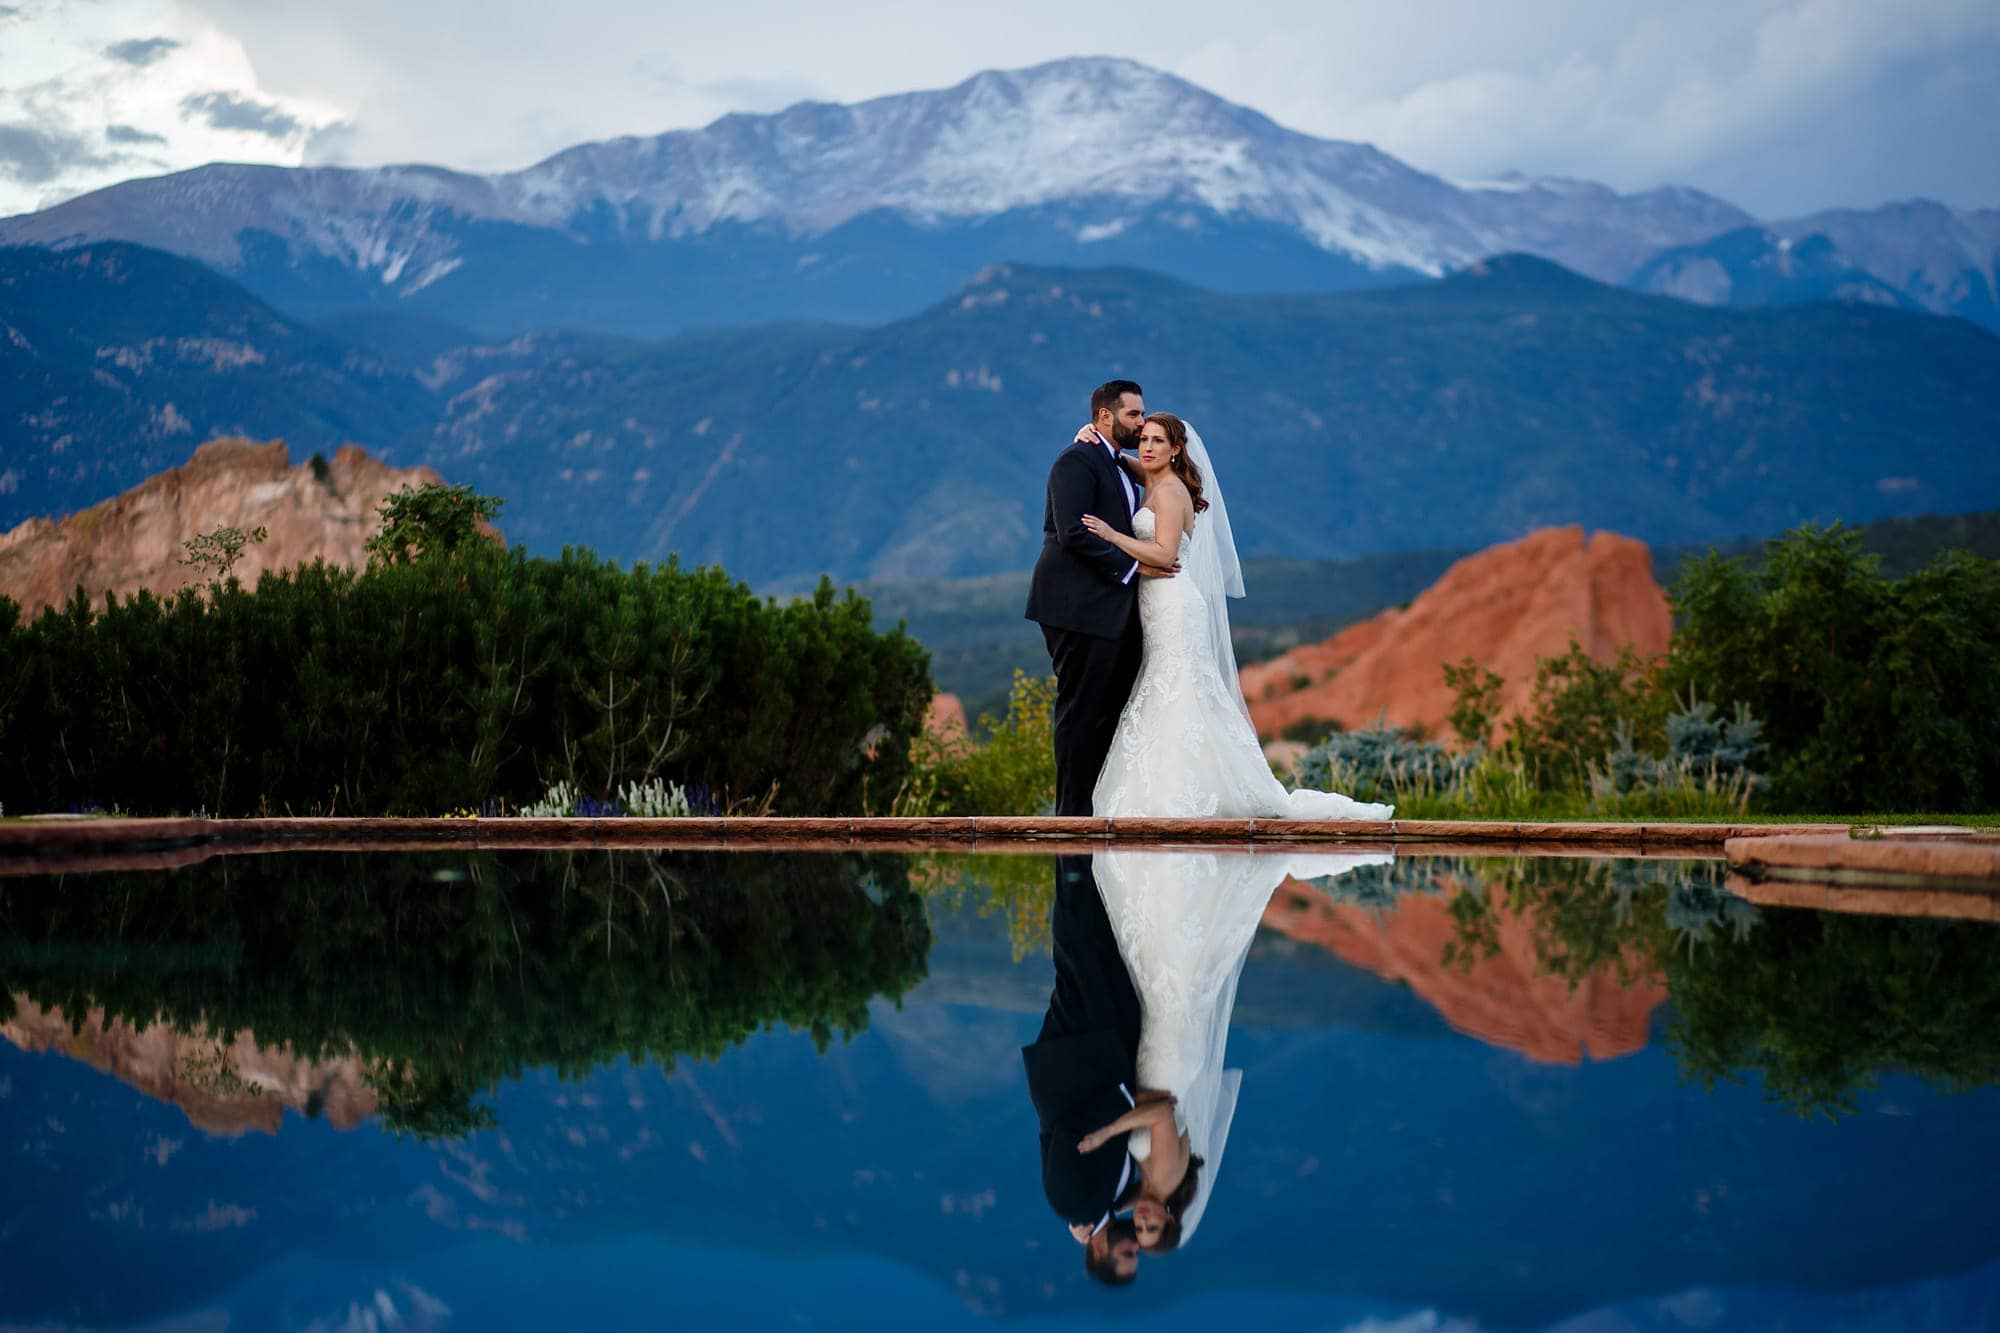 Reflected By The Pool Devan And Joshua Share A Moment Together As Pikes Peak Provides Backdrop After Their Wedding At Garden Of S Club